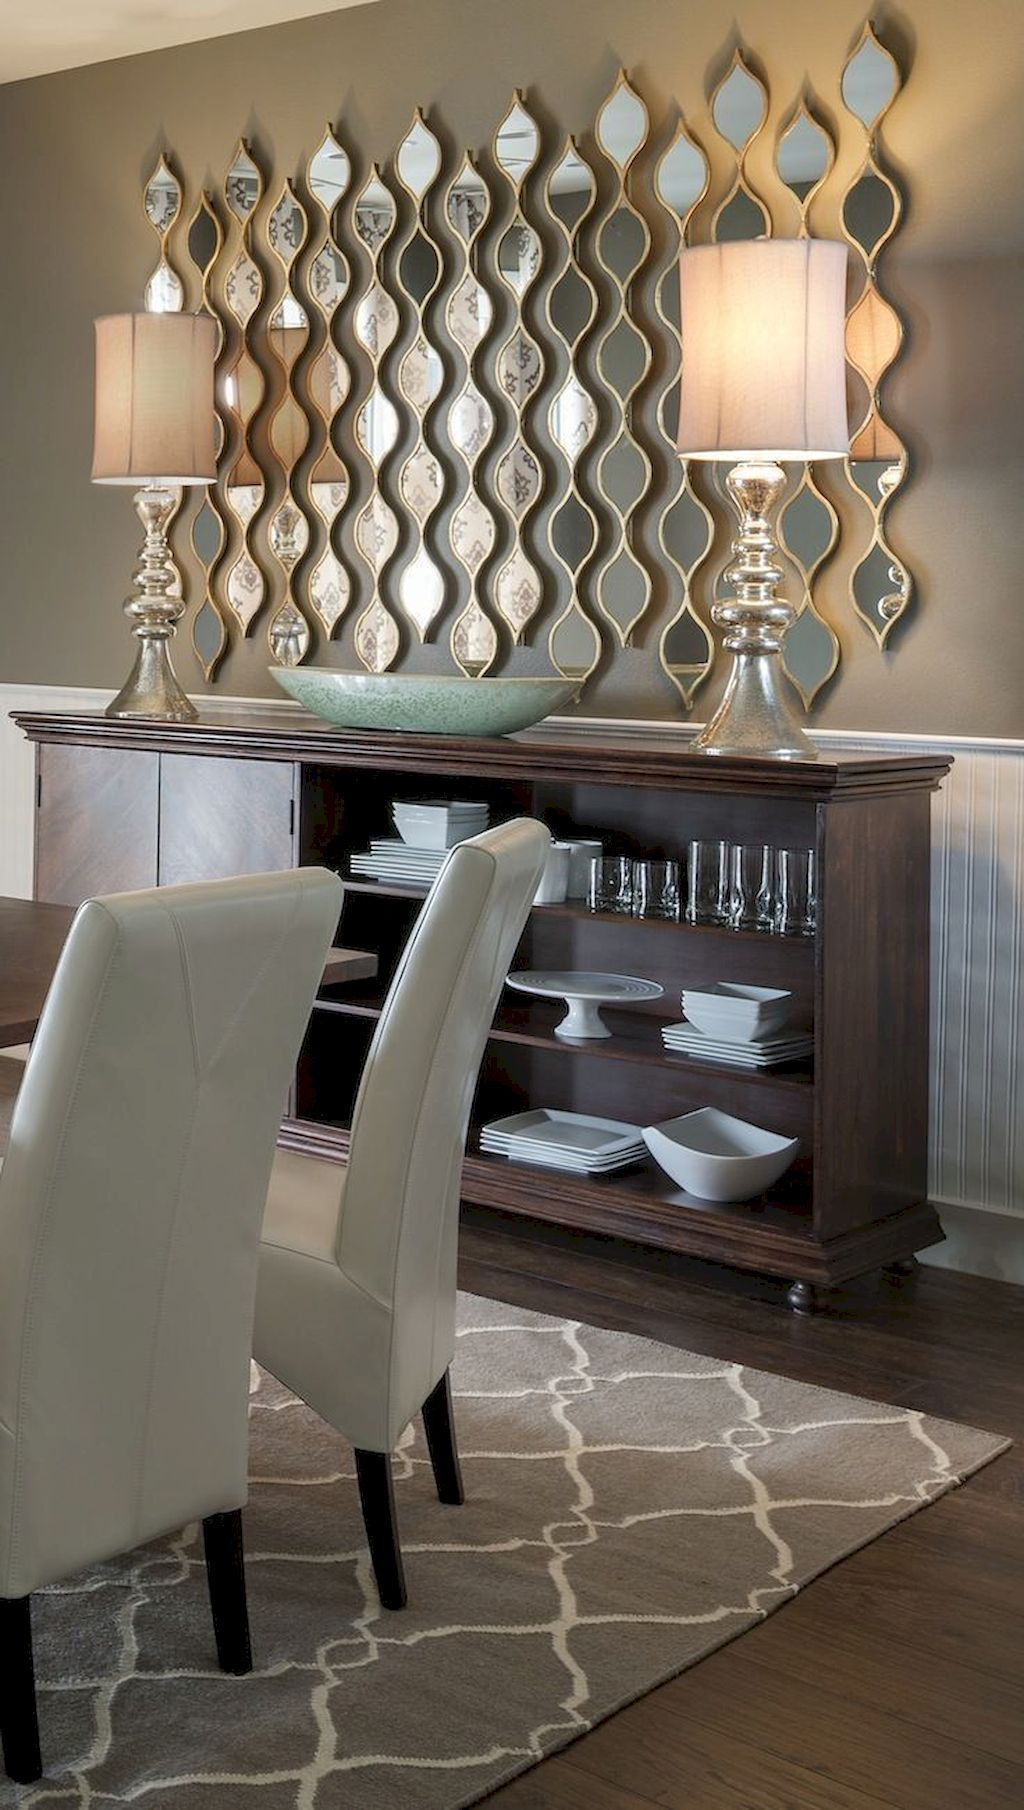 50+ Wall Décor Ideas for 2018 Dining Room Trend is part of Wall Decor Ideas For  Dining Room Trend Elonahome Com - Creating creative view in your dining room can be done in many ways and one of them is by decorating the wall  Doing dining room wall décor is not as difficult as it seems and it is surely doable